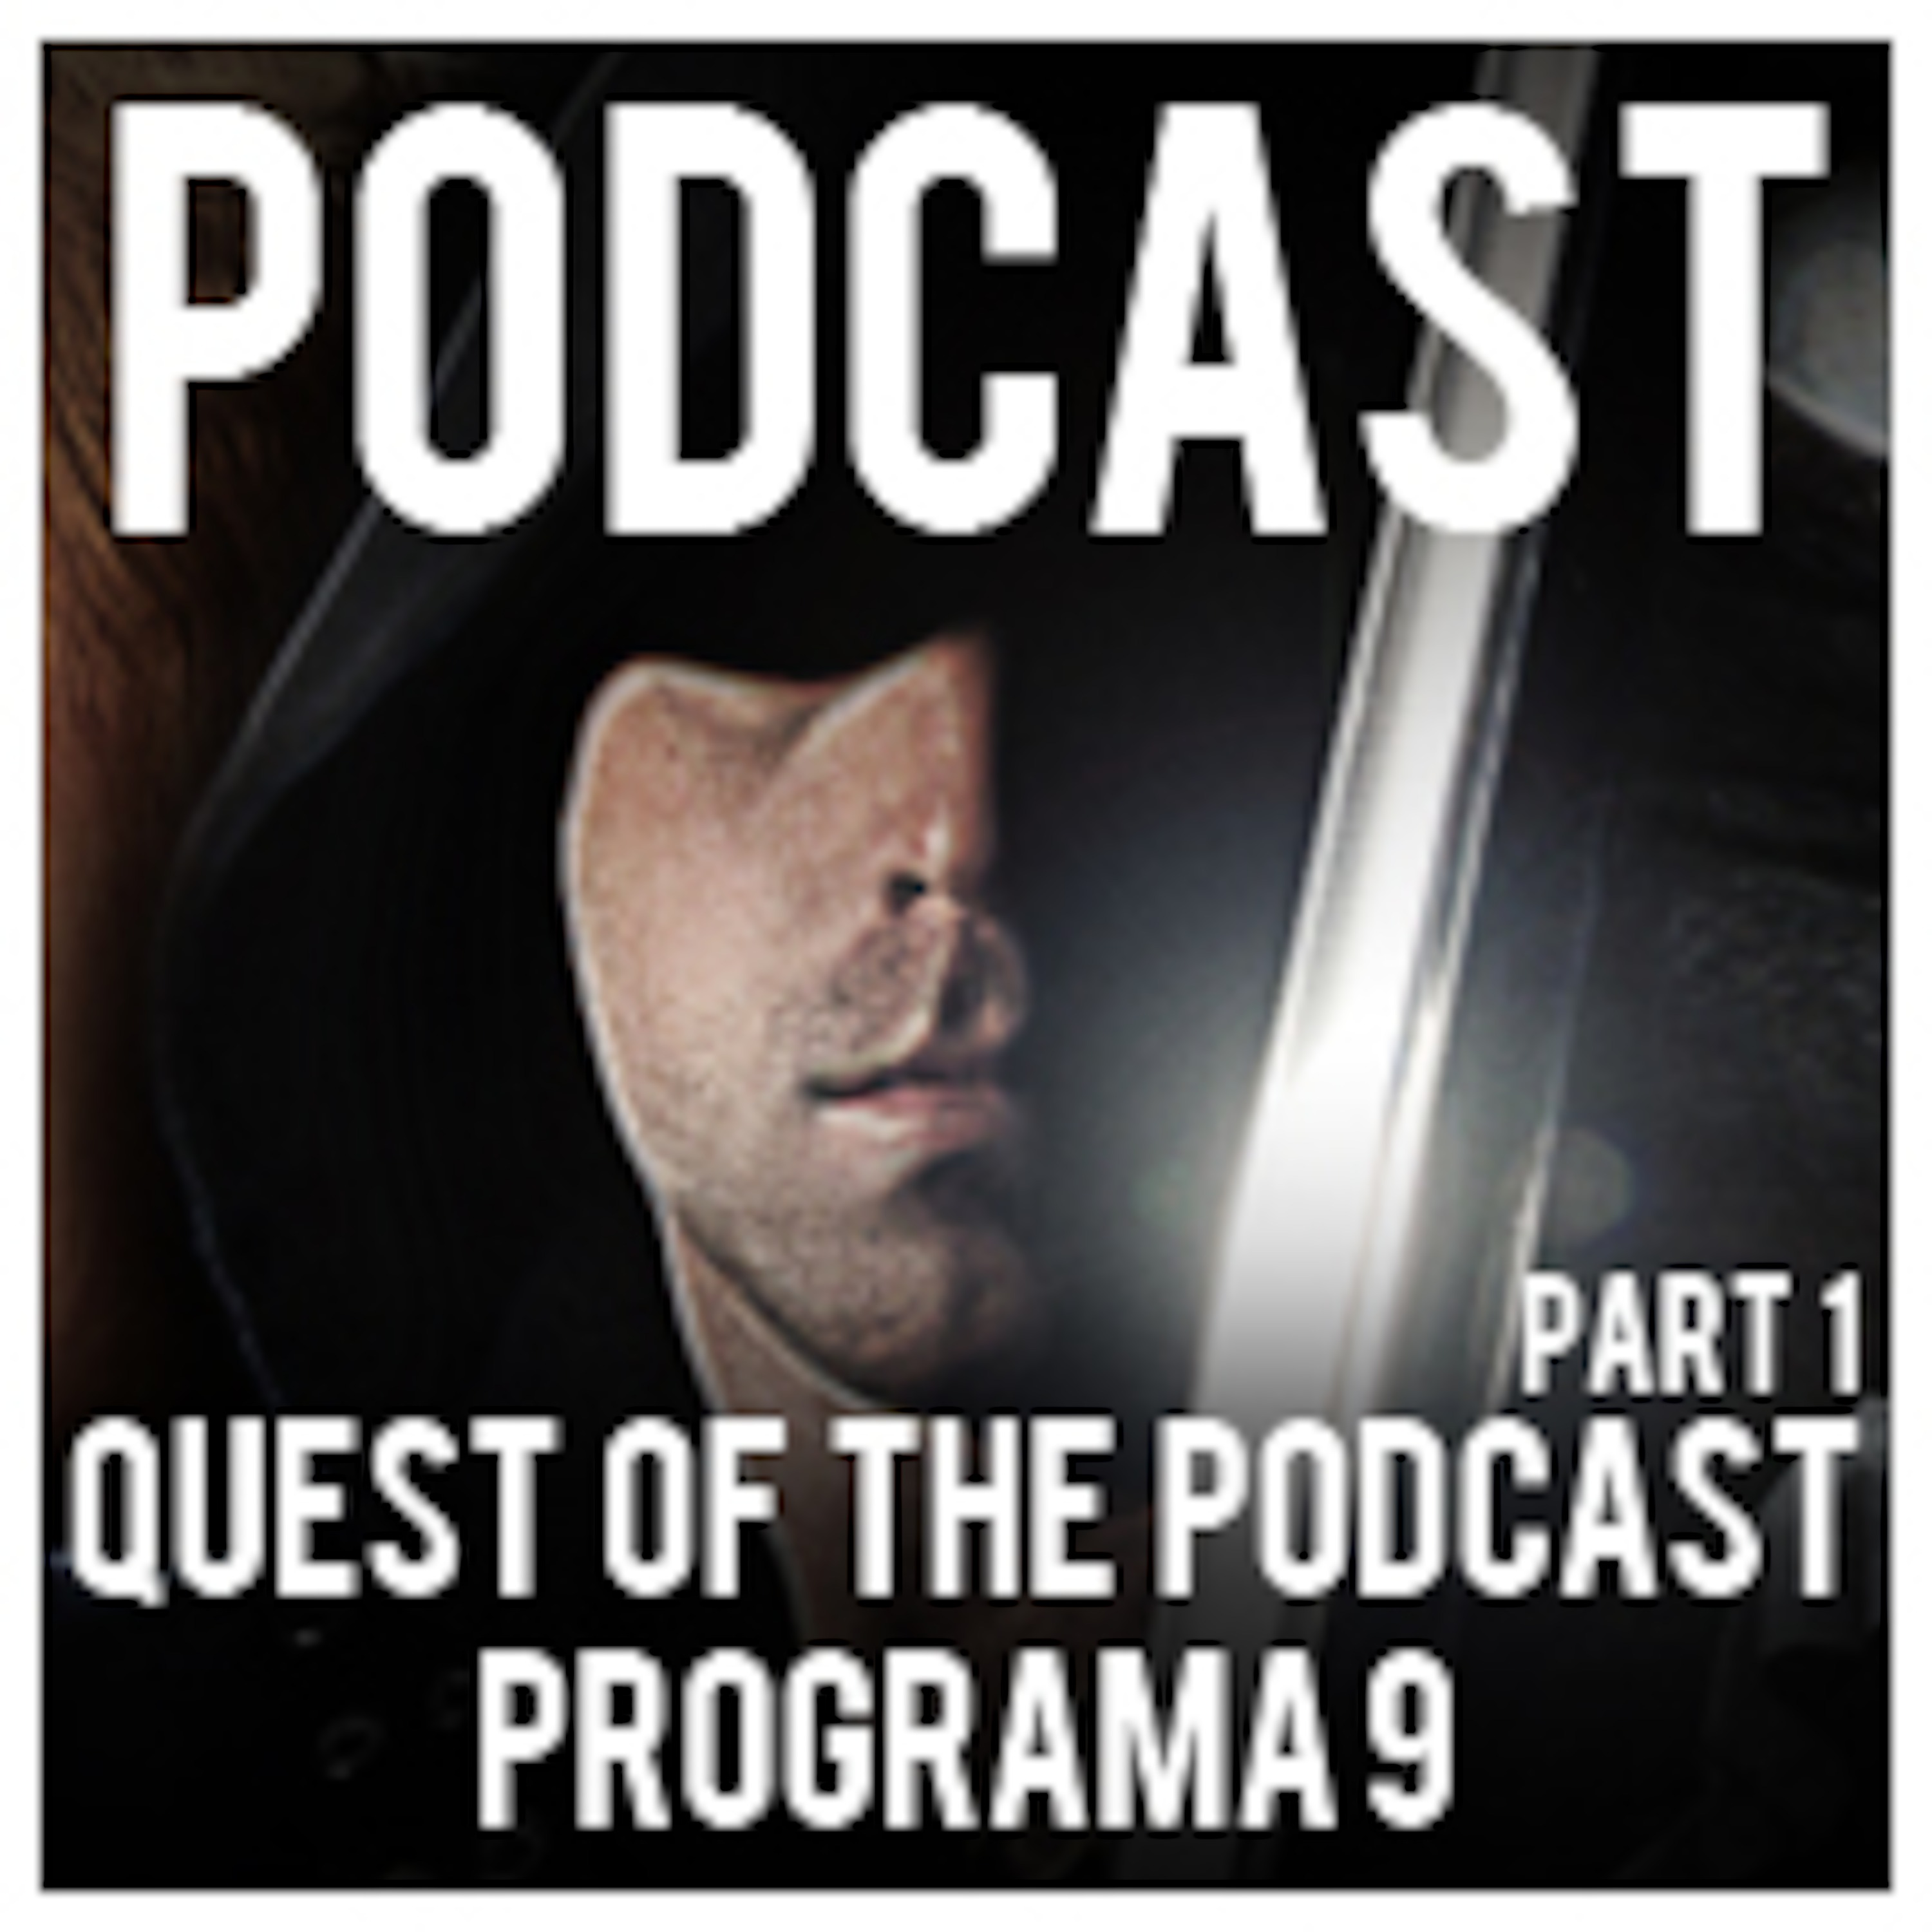 Quest of the Podcast - Porgrama 9